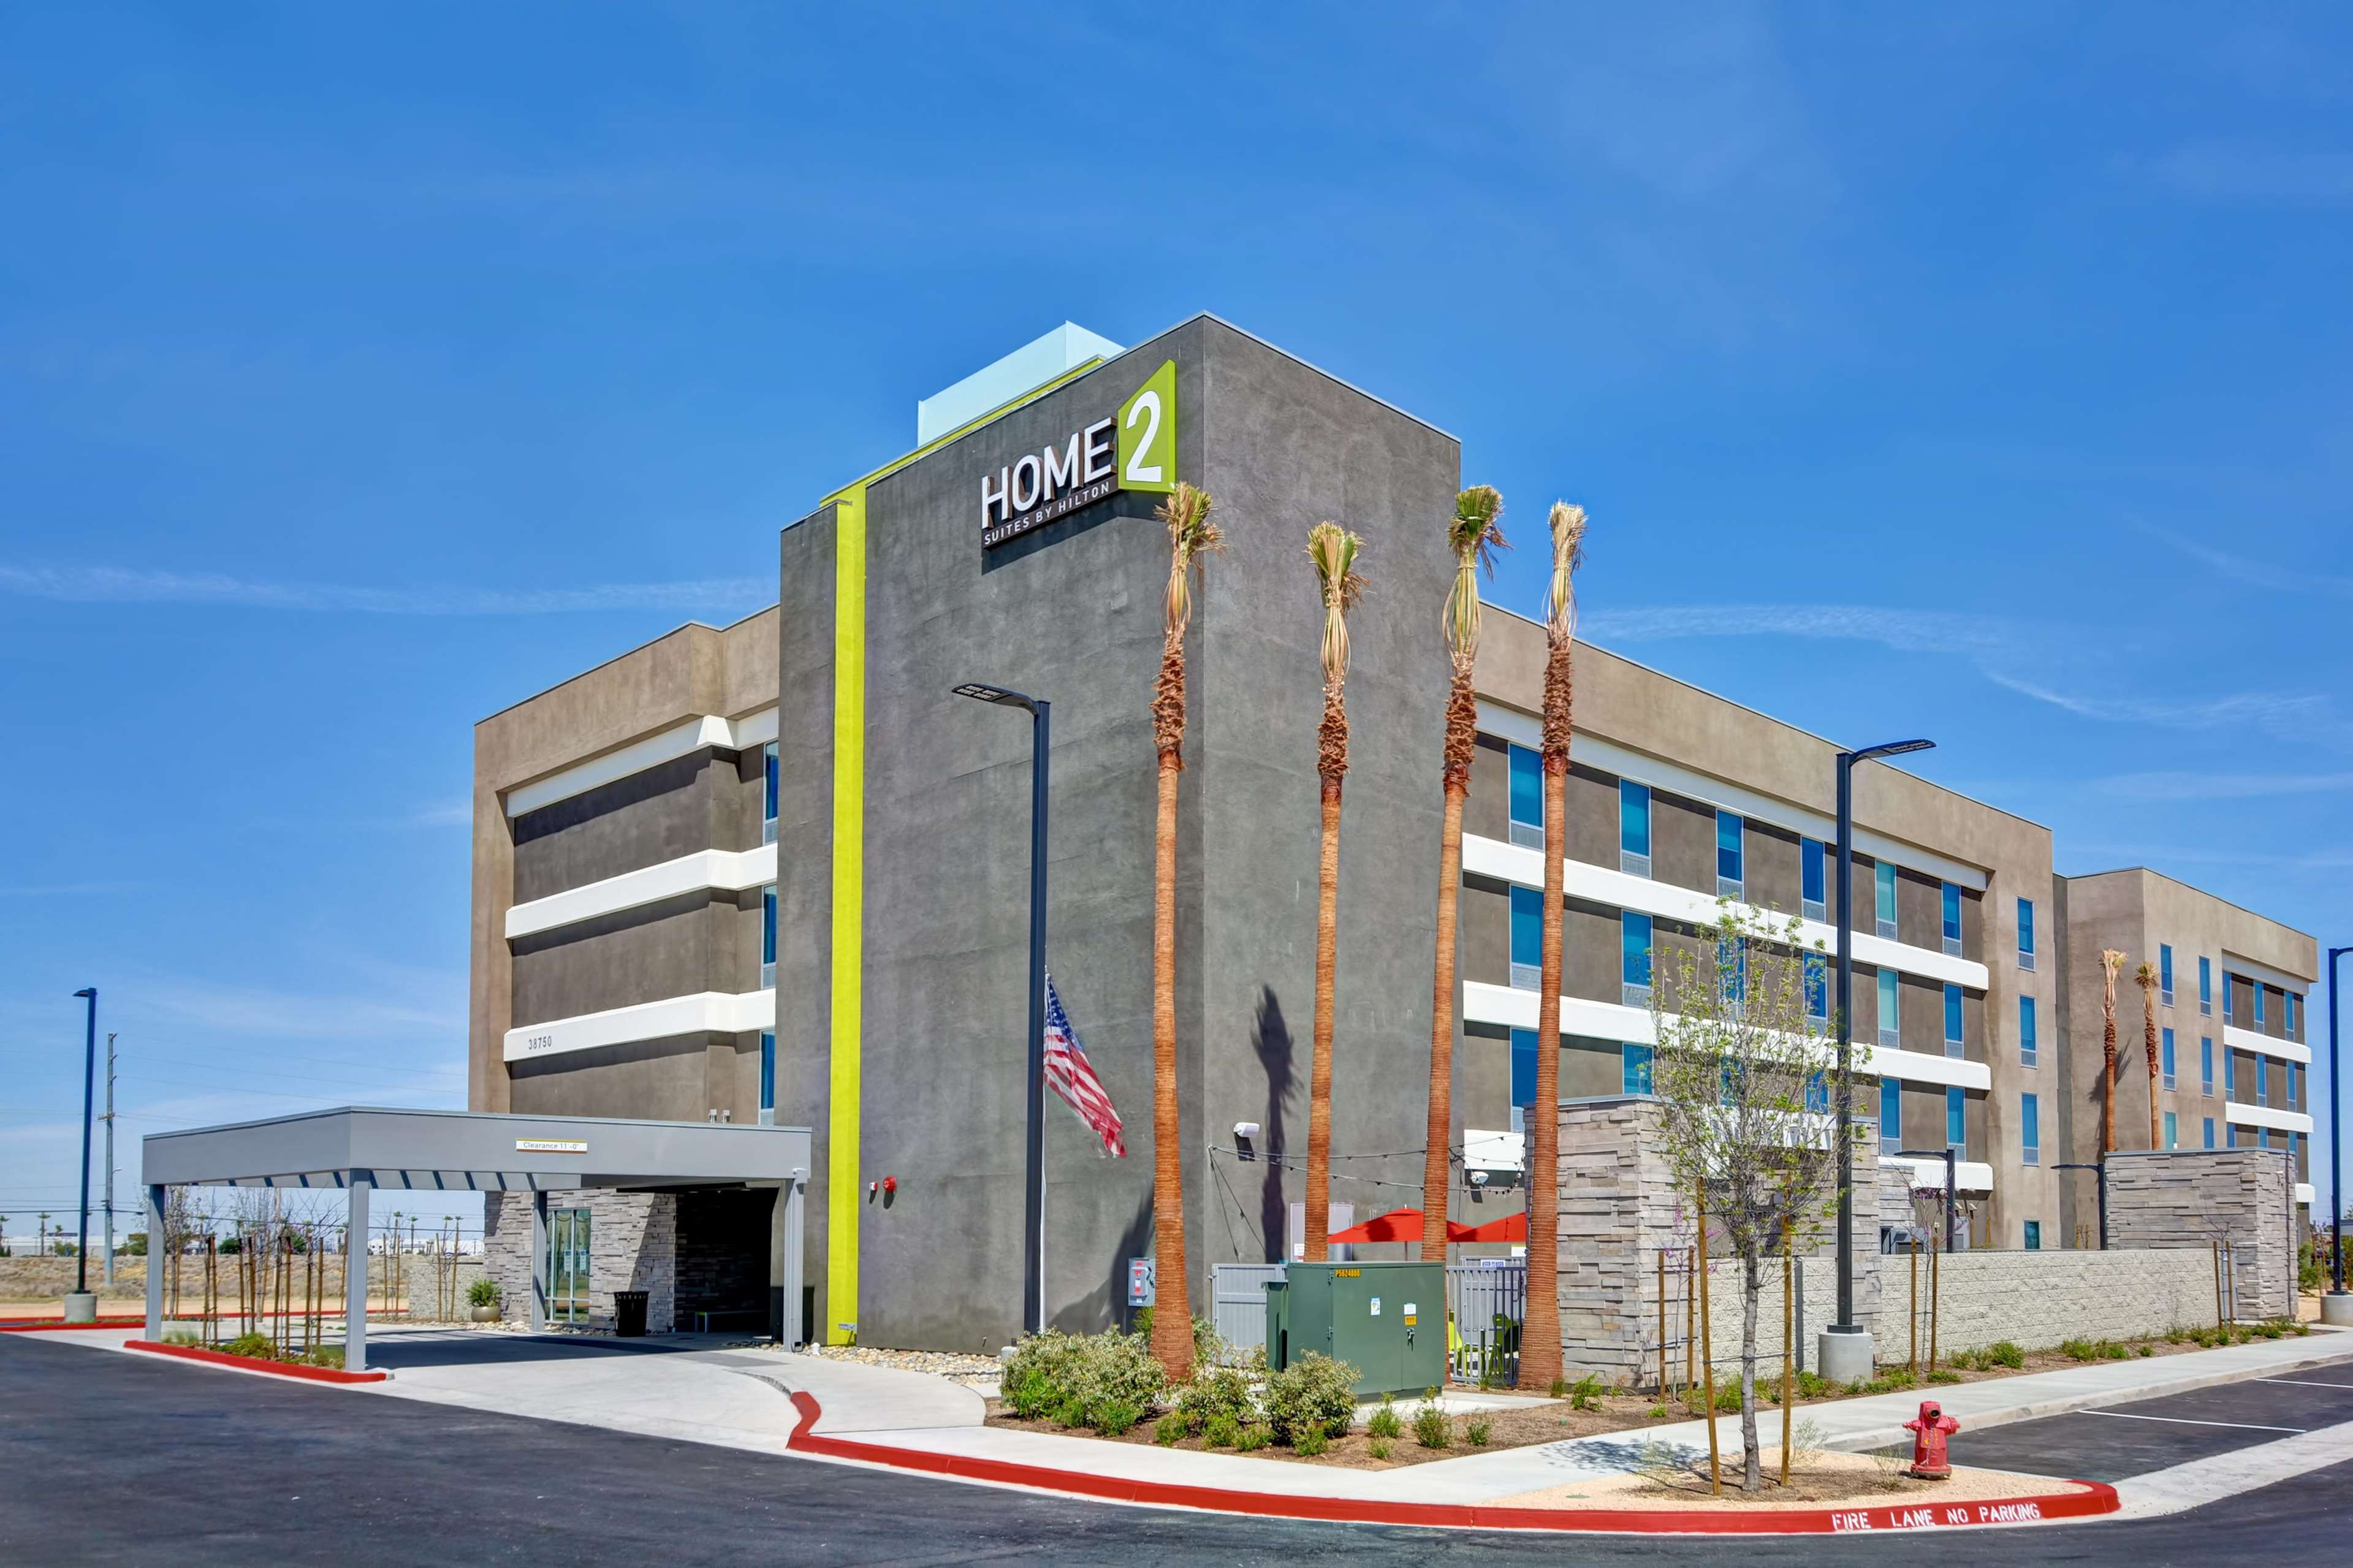 Home2 Suites by Hilton Palmdale image 1